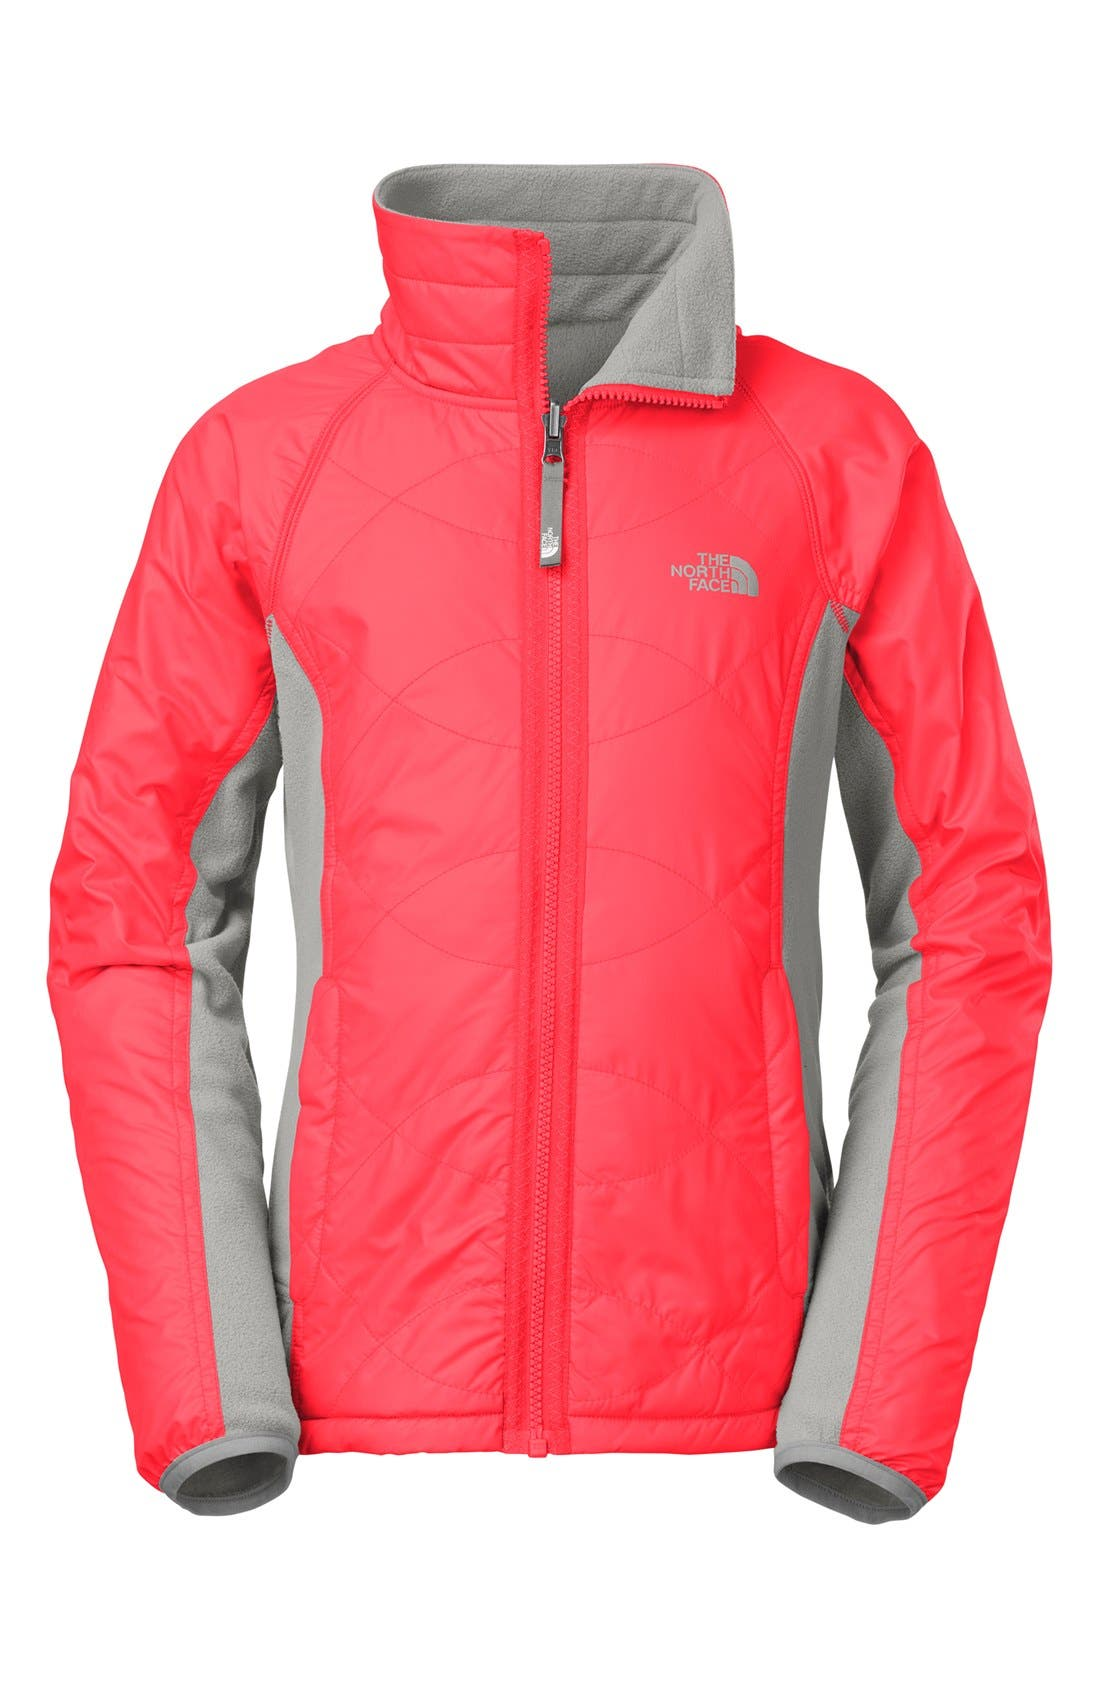 Main Image - The North Face 'Madison' Reversible Jacket (Little Girl)